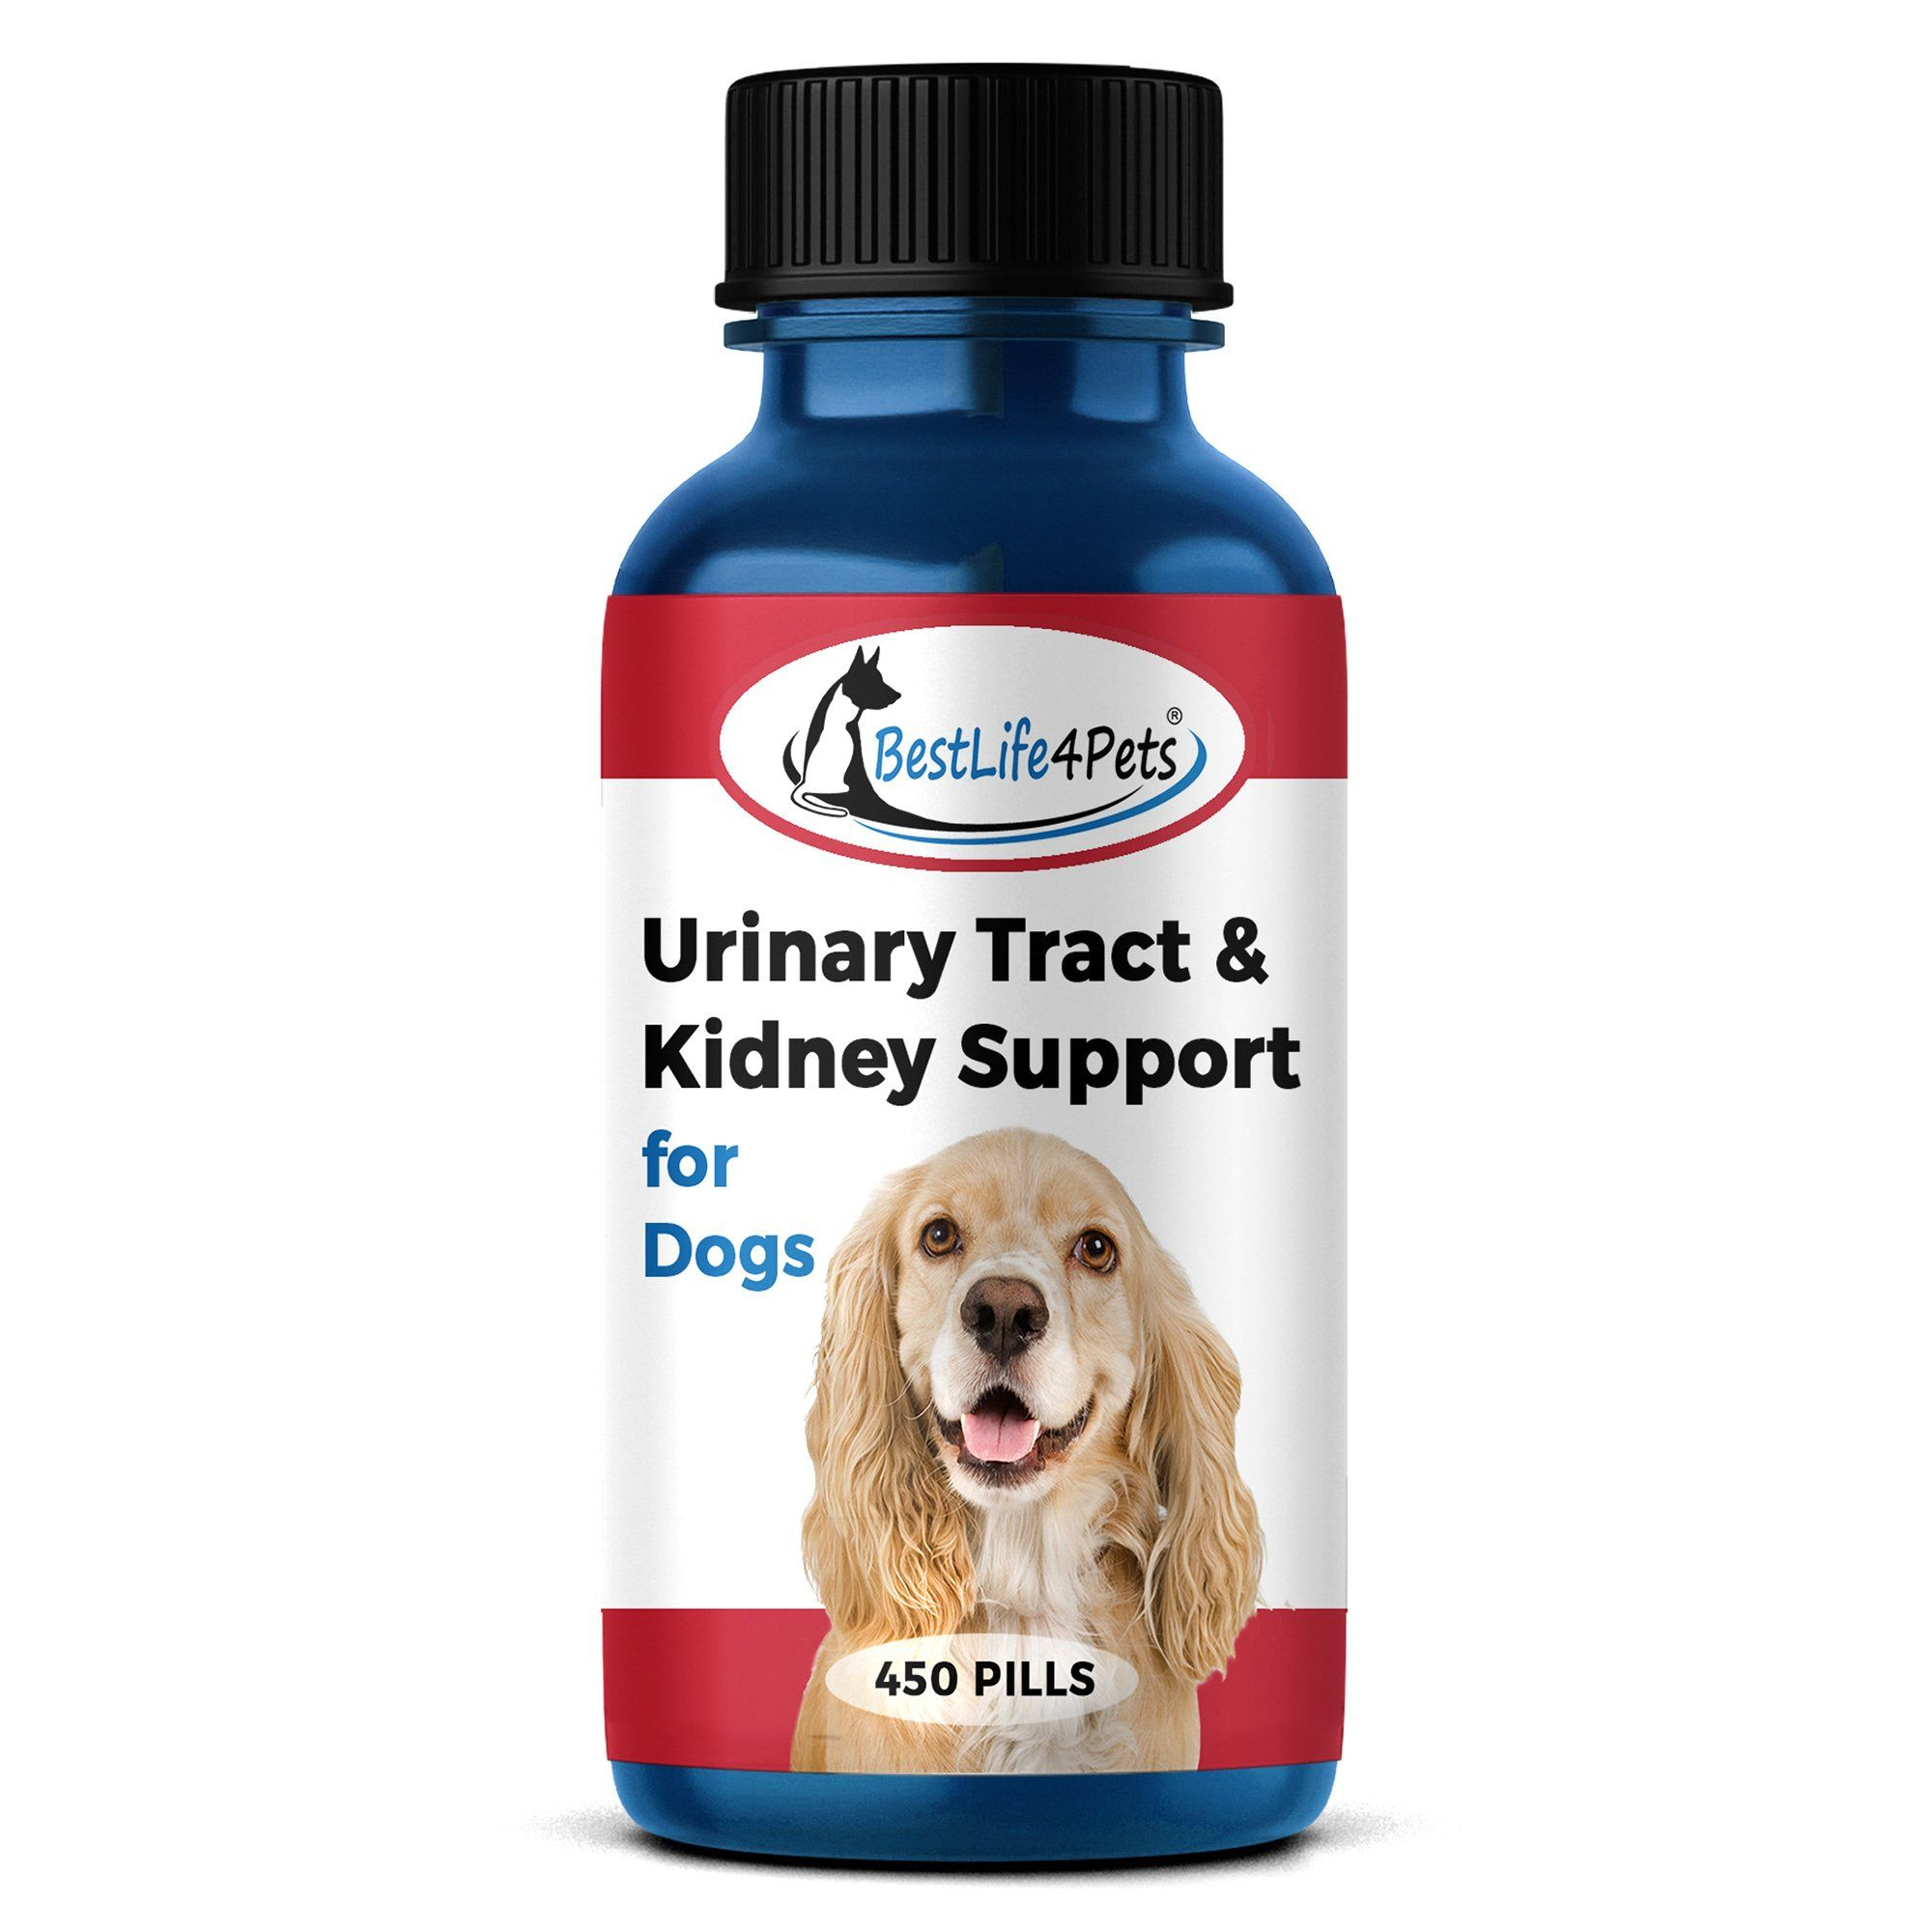 Urinary Tract Infection and Kidney Support Remedy for Dogs